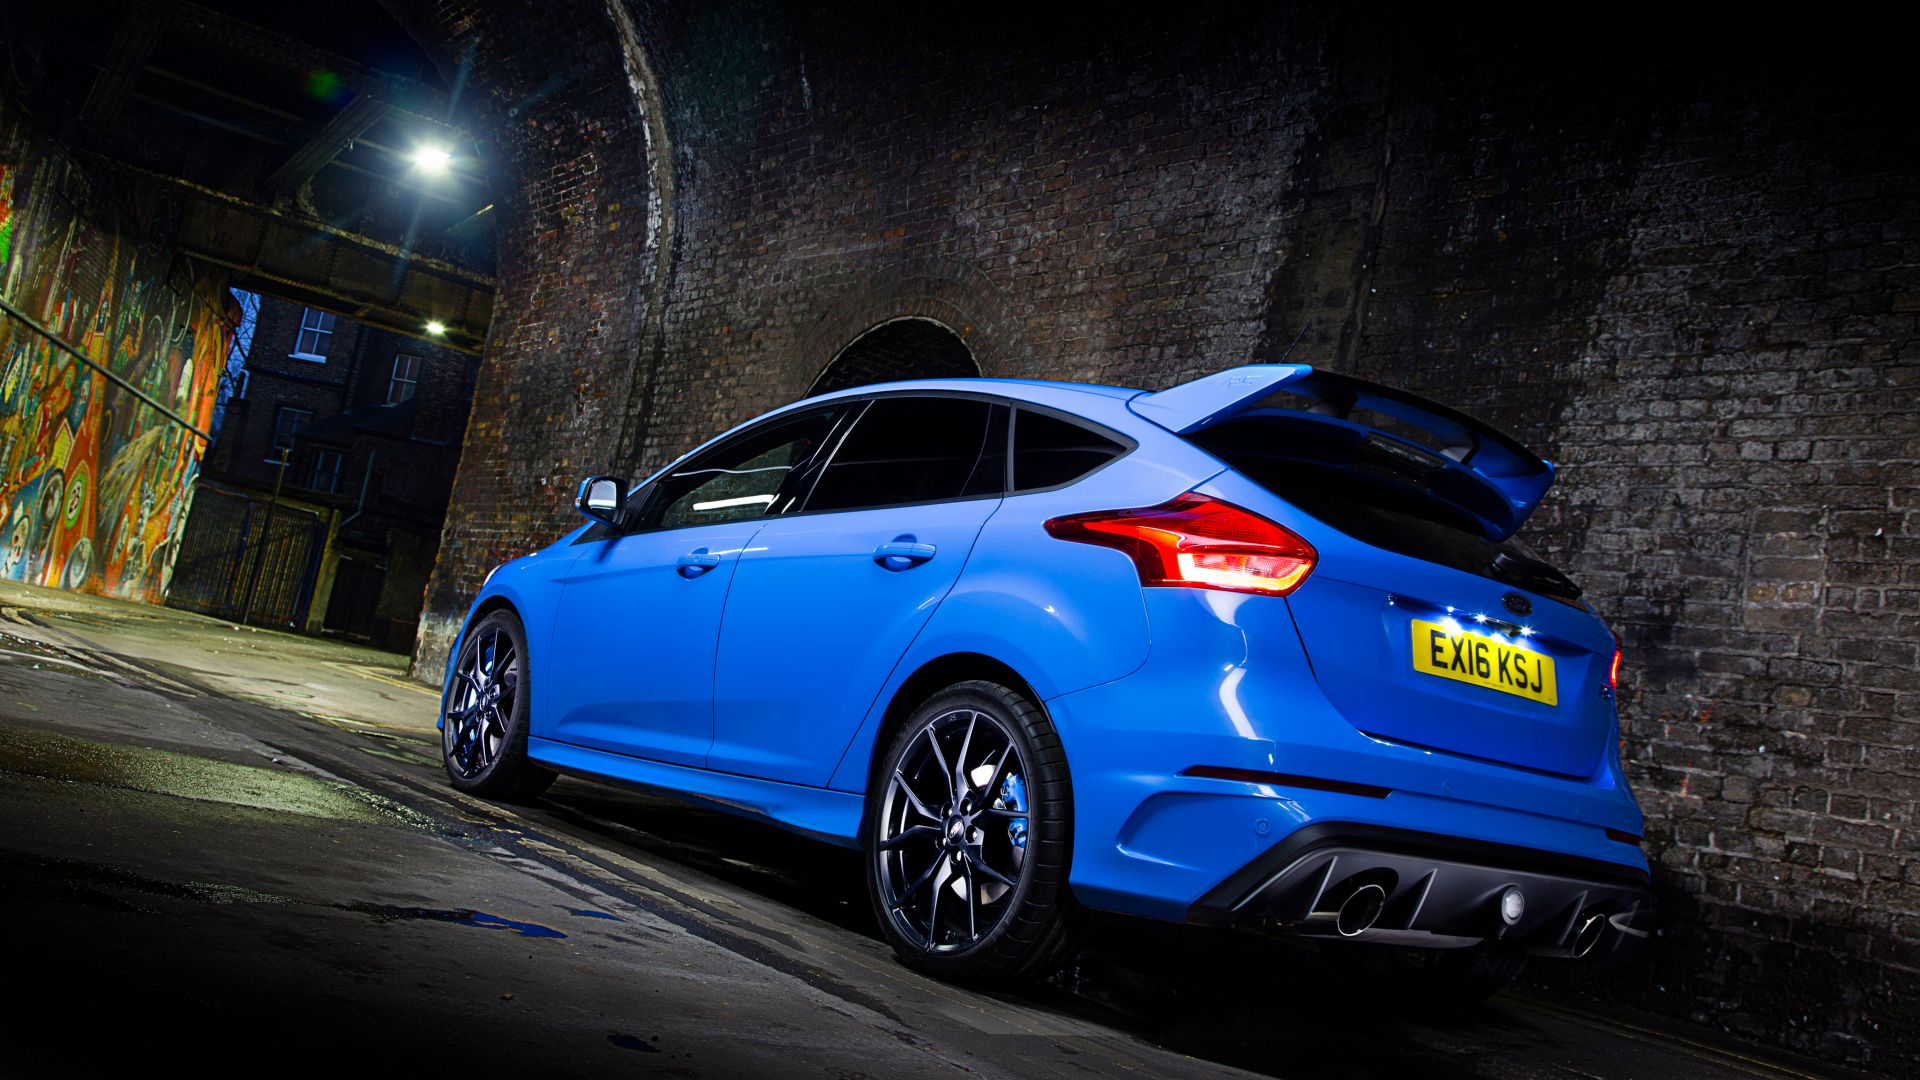 Ford Focus RS, hatchback, blue, night (horizontal)